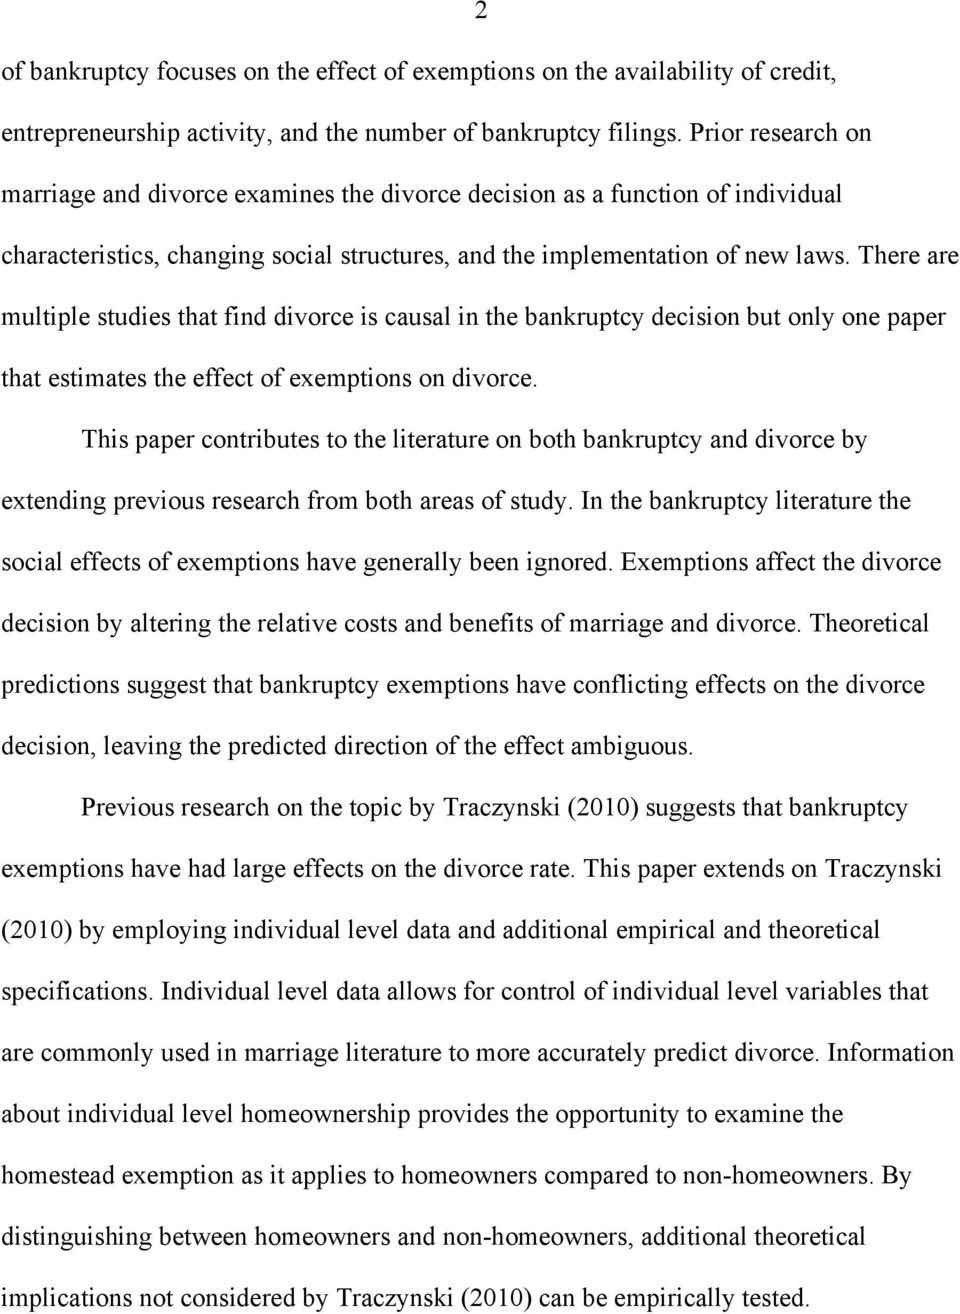 There are multiple studies that find divorce is causal in the bankruptcy decision but only one paper that estimates the effect of exemptions on divorce.